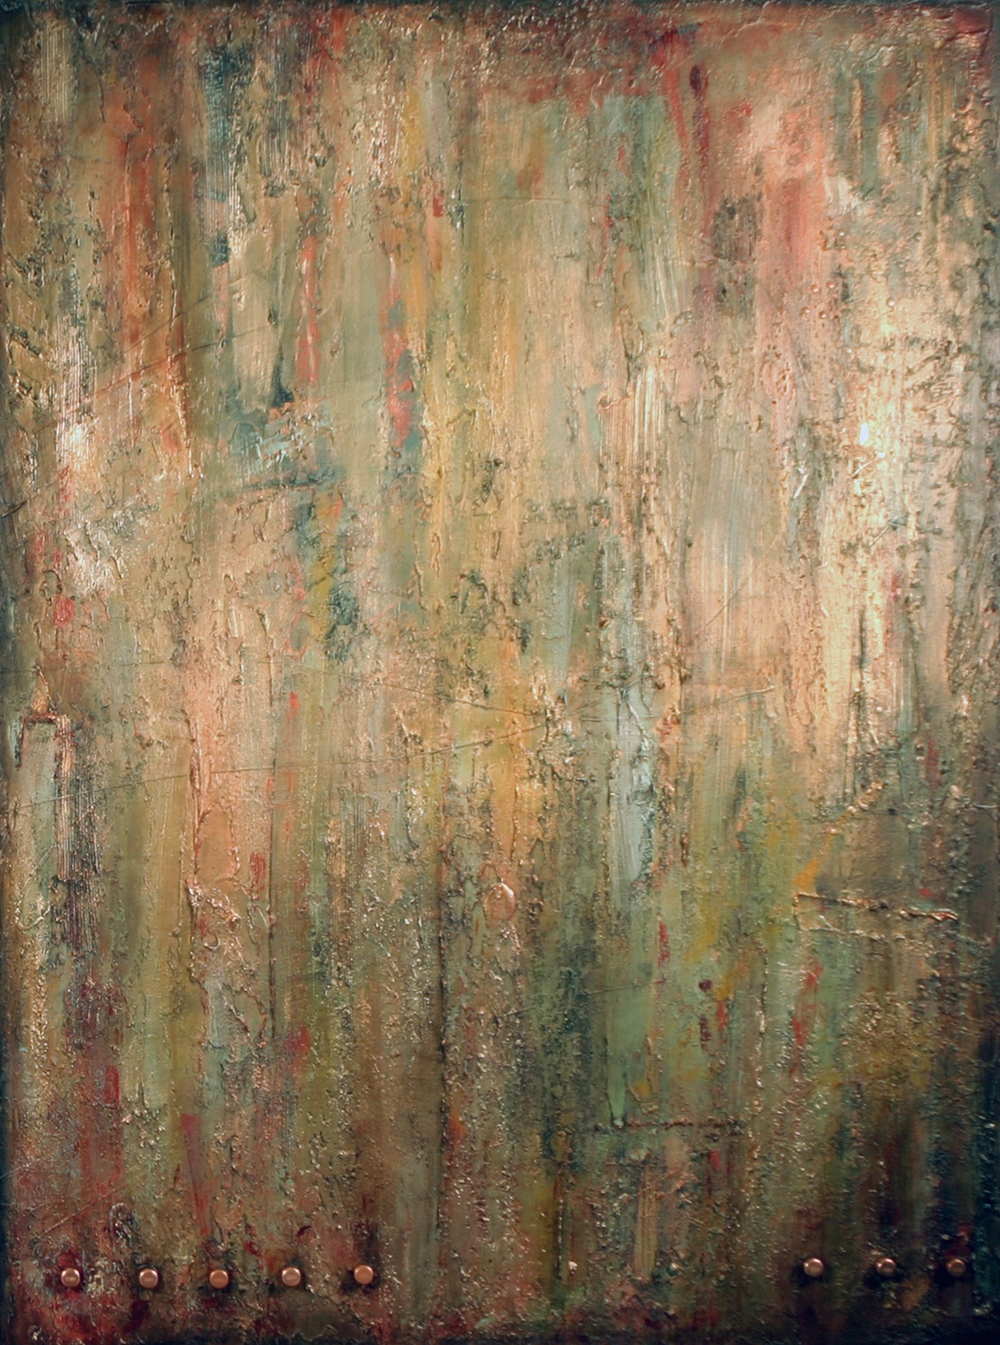 liberated spirits  48 x 36 x 1.5 inches  mixed media +copper on canvas  $3,240